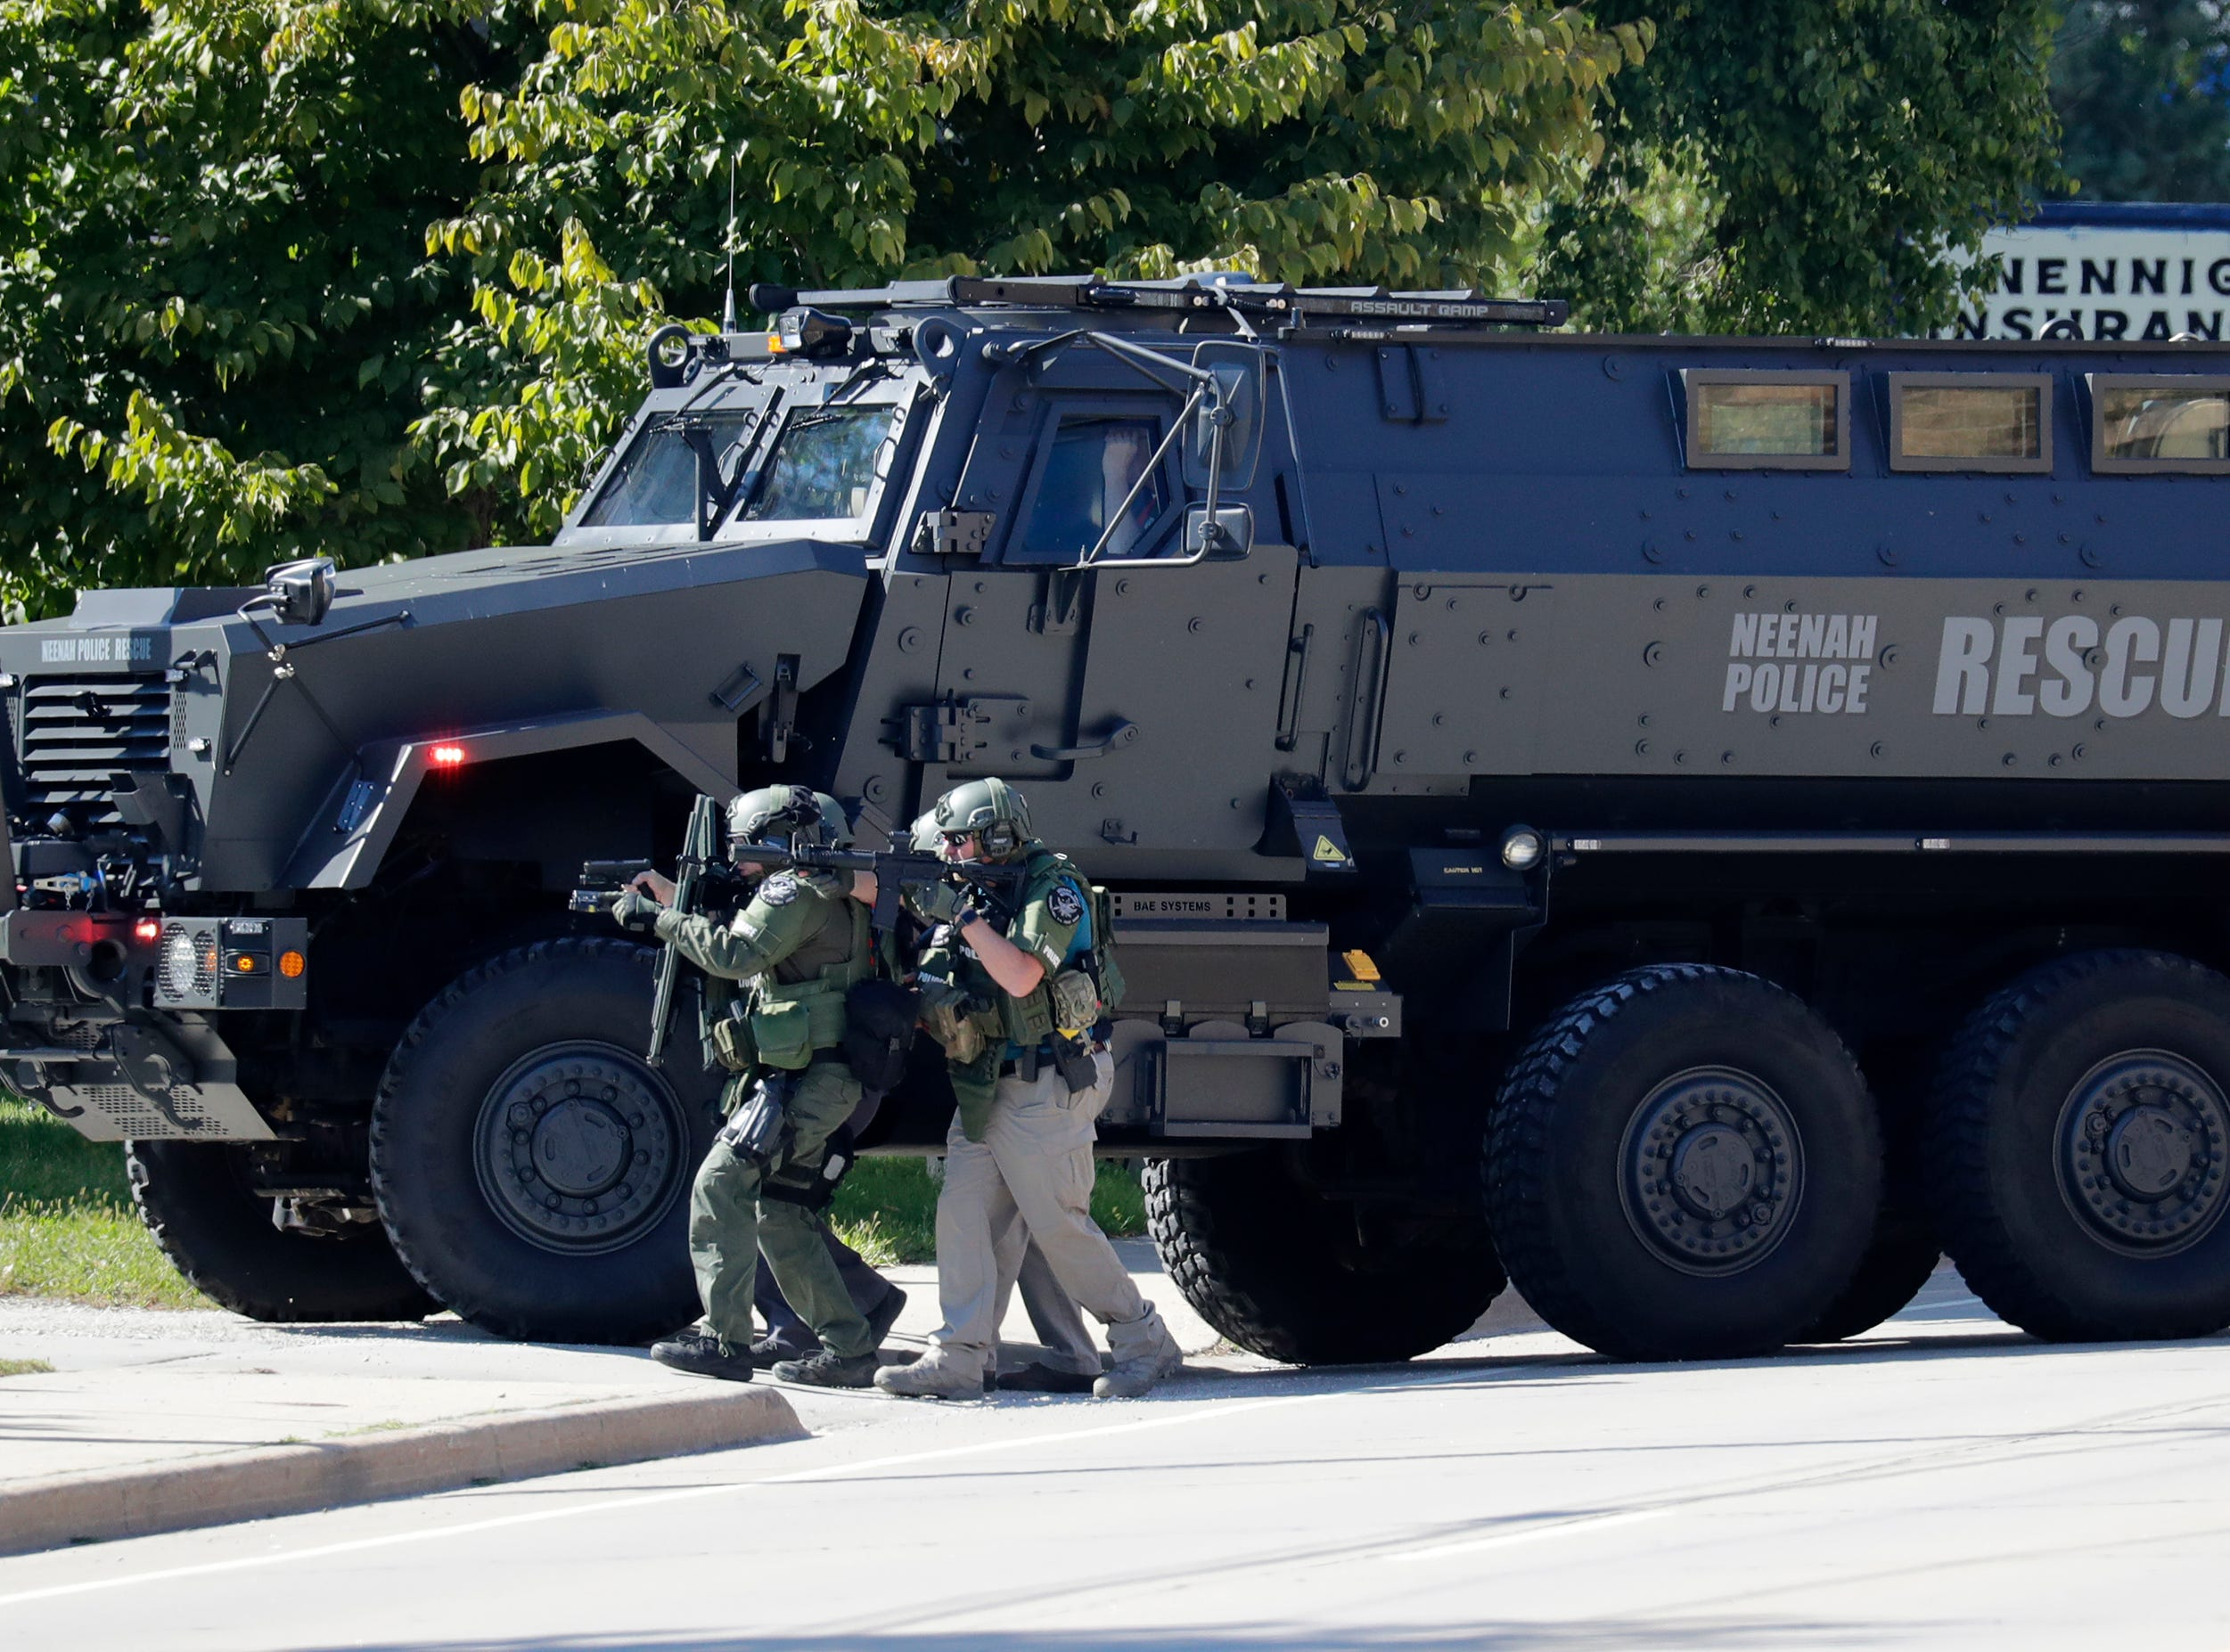 """Officials move towards a home during an """"active situation"""" at 628 Main Street Monday, Sept. 10, 2018, in Neenah, Wis. Dan Powers/USA TODAY NETWORK-Wisconsin"""